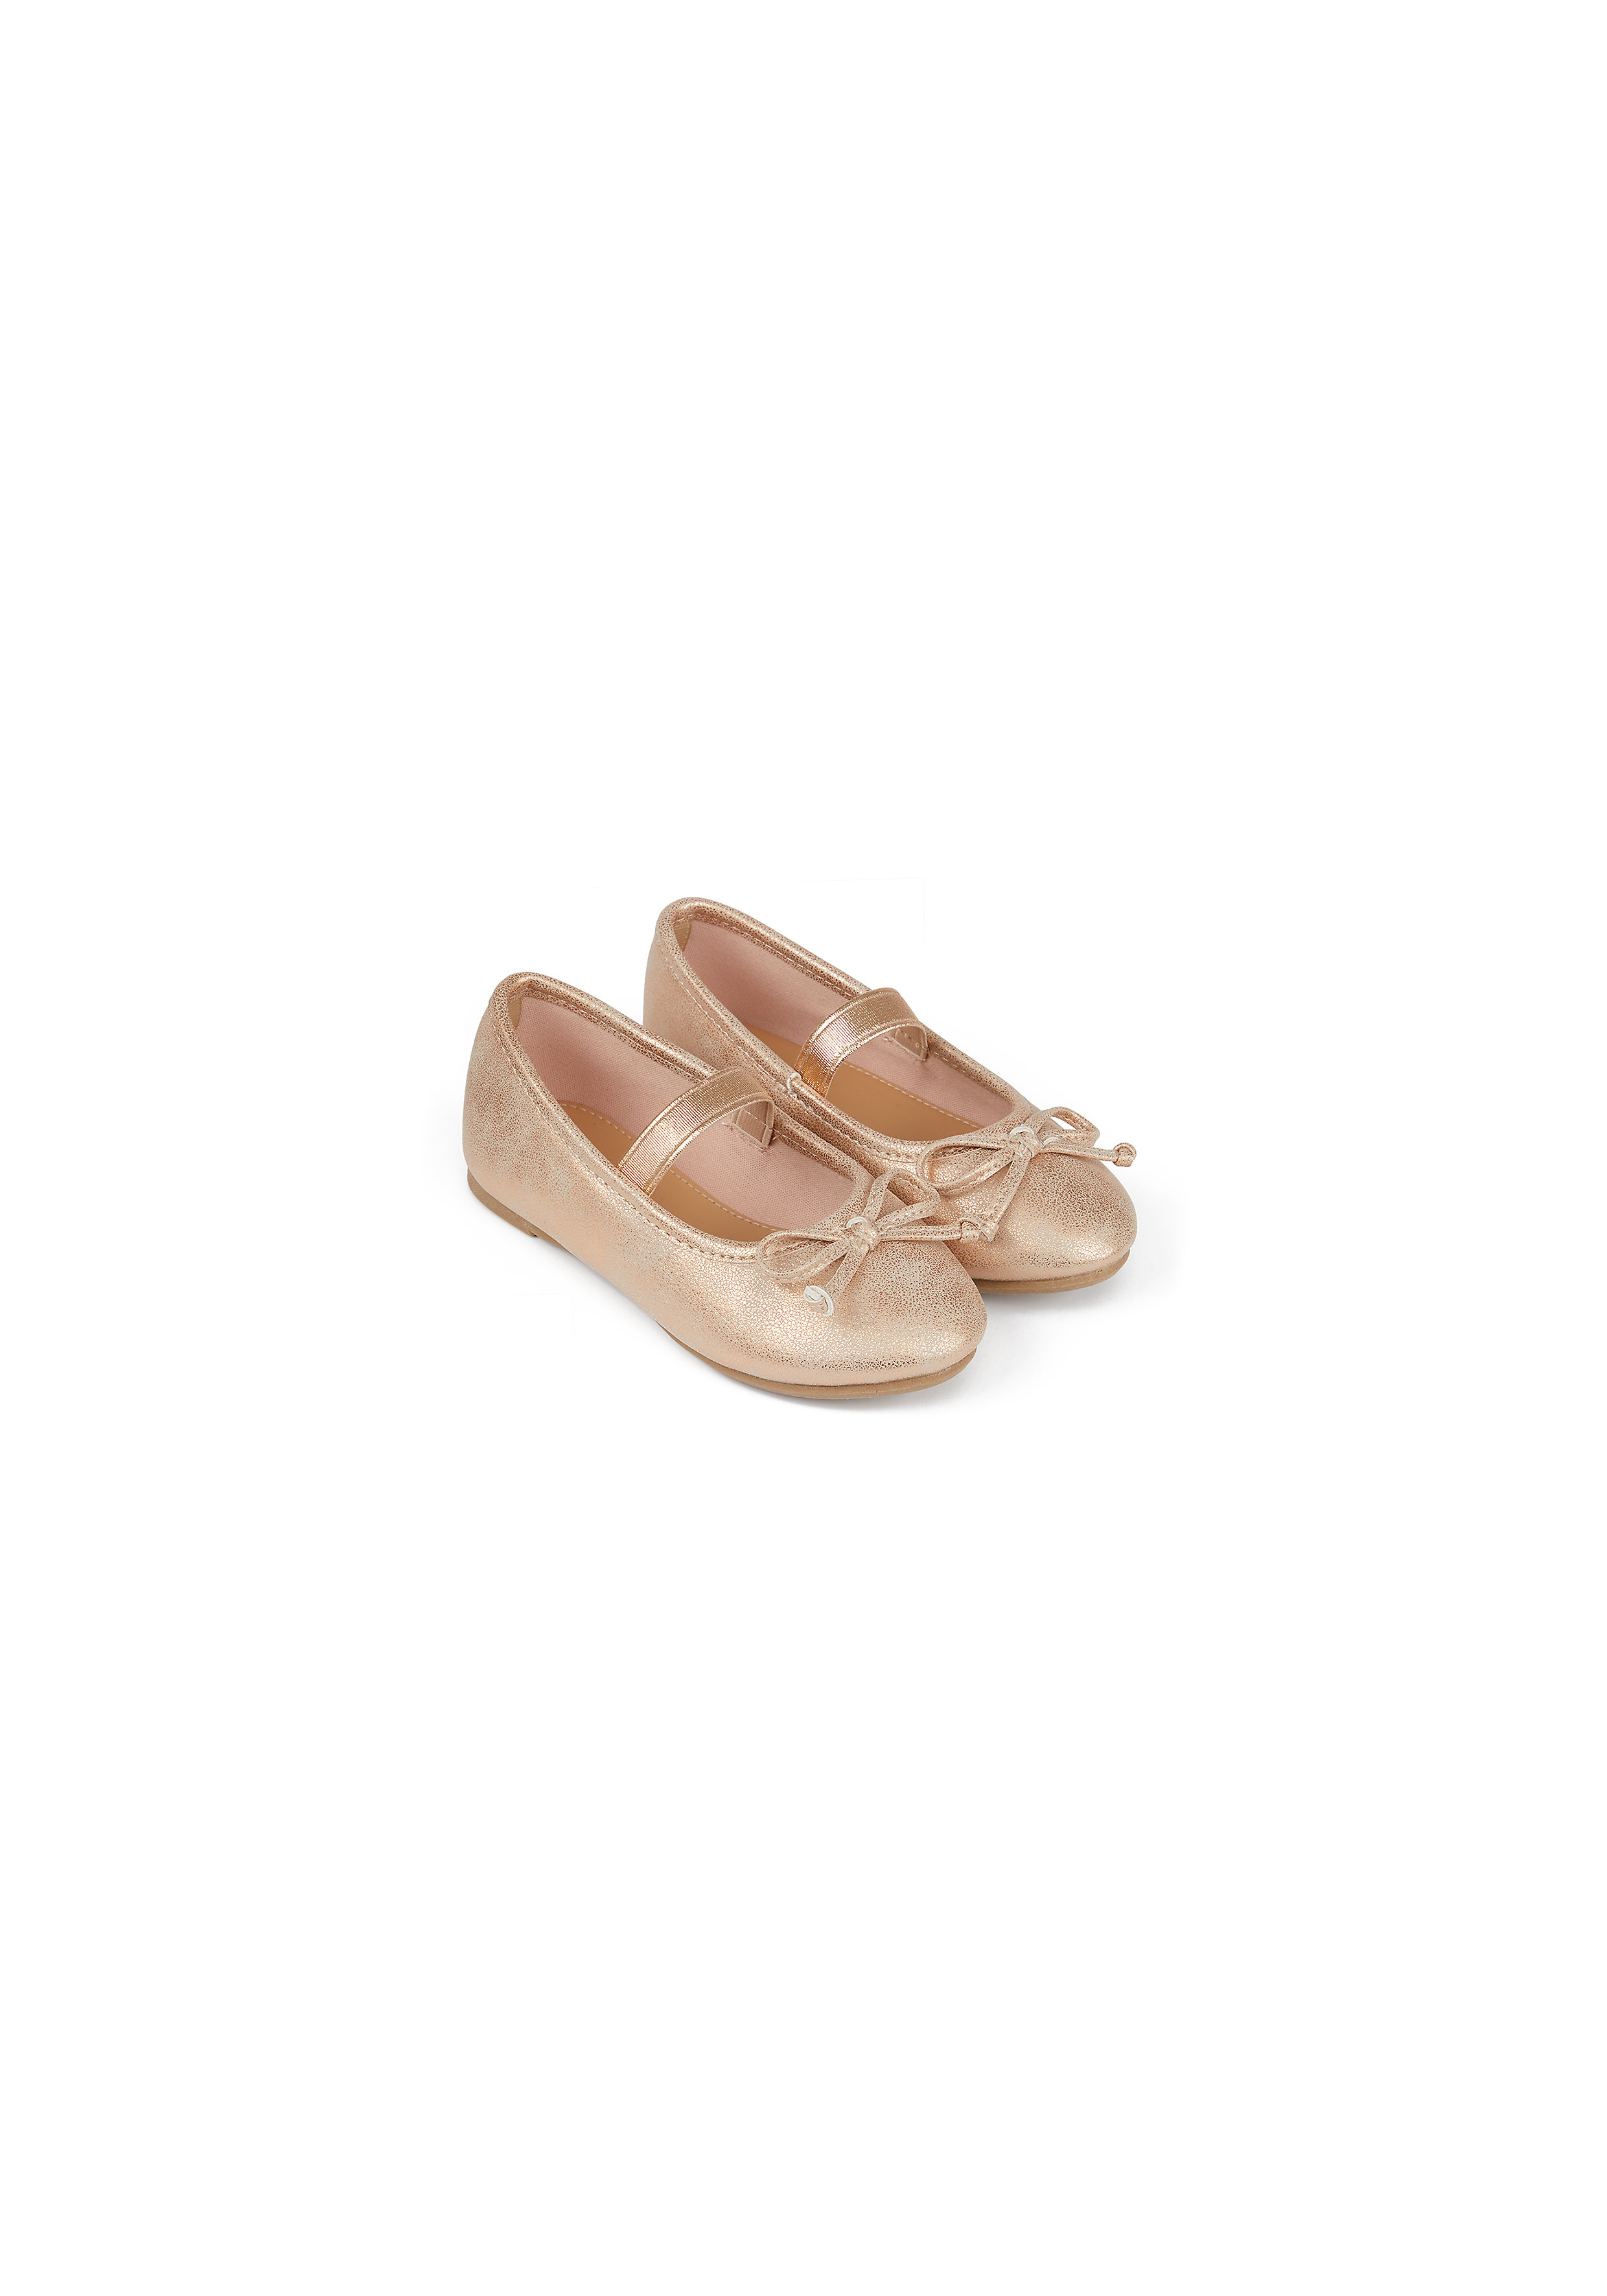 Mothercare | Girls Ballerina Shoes Bow Detail - Rose Gold